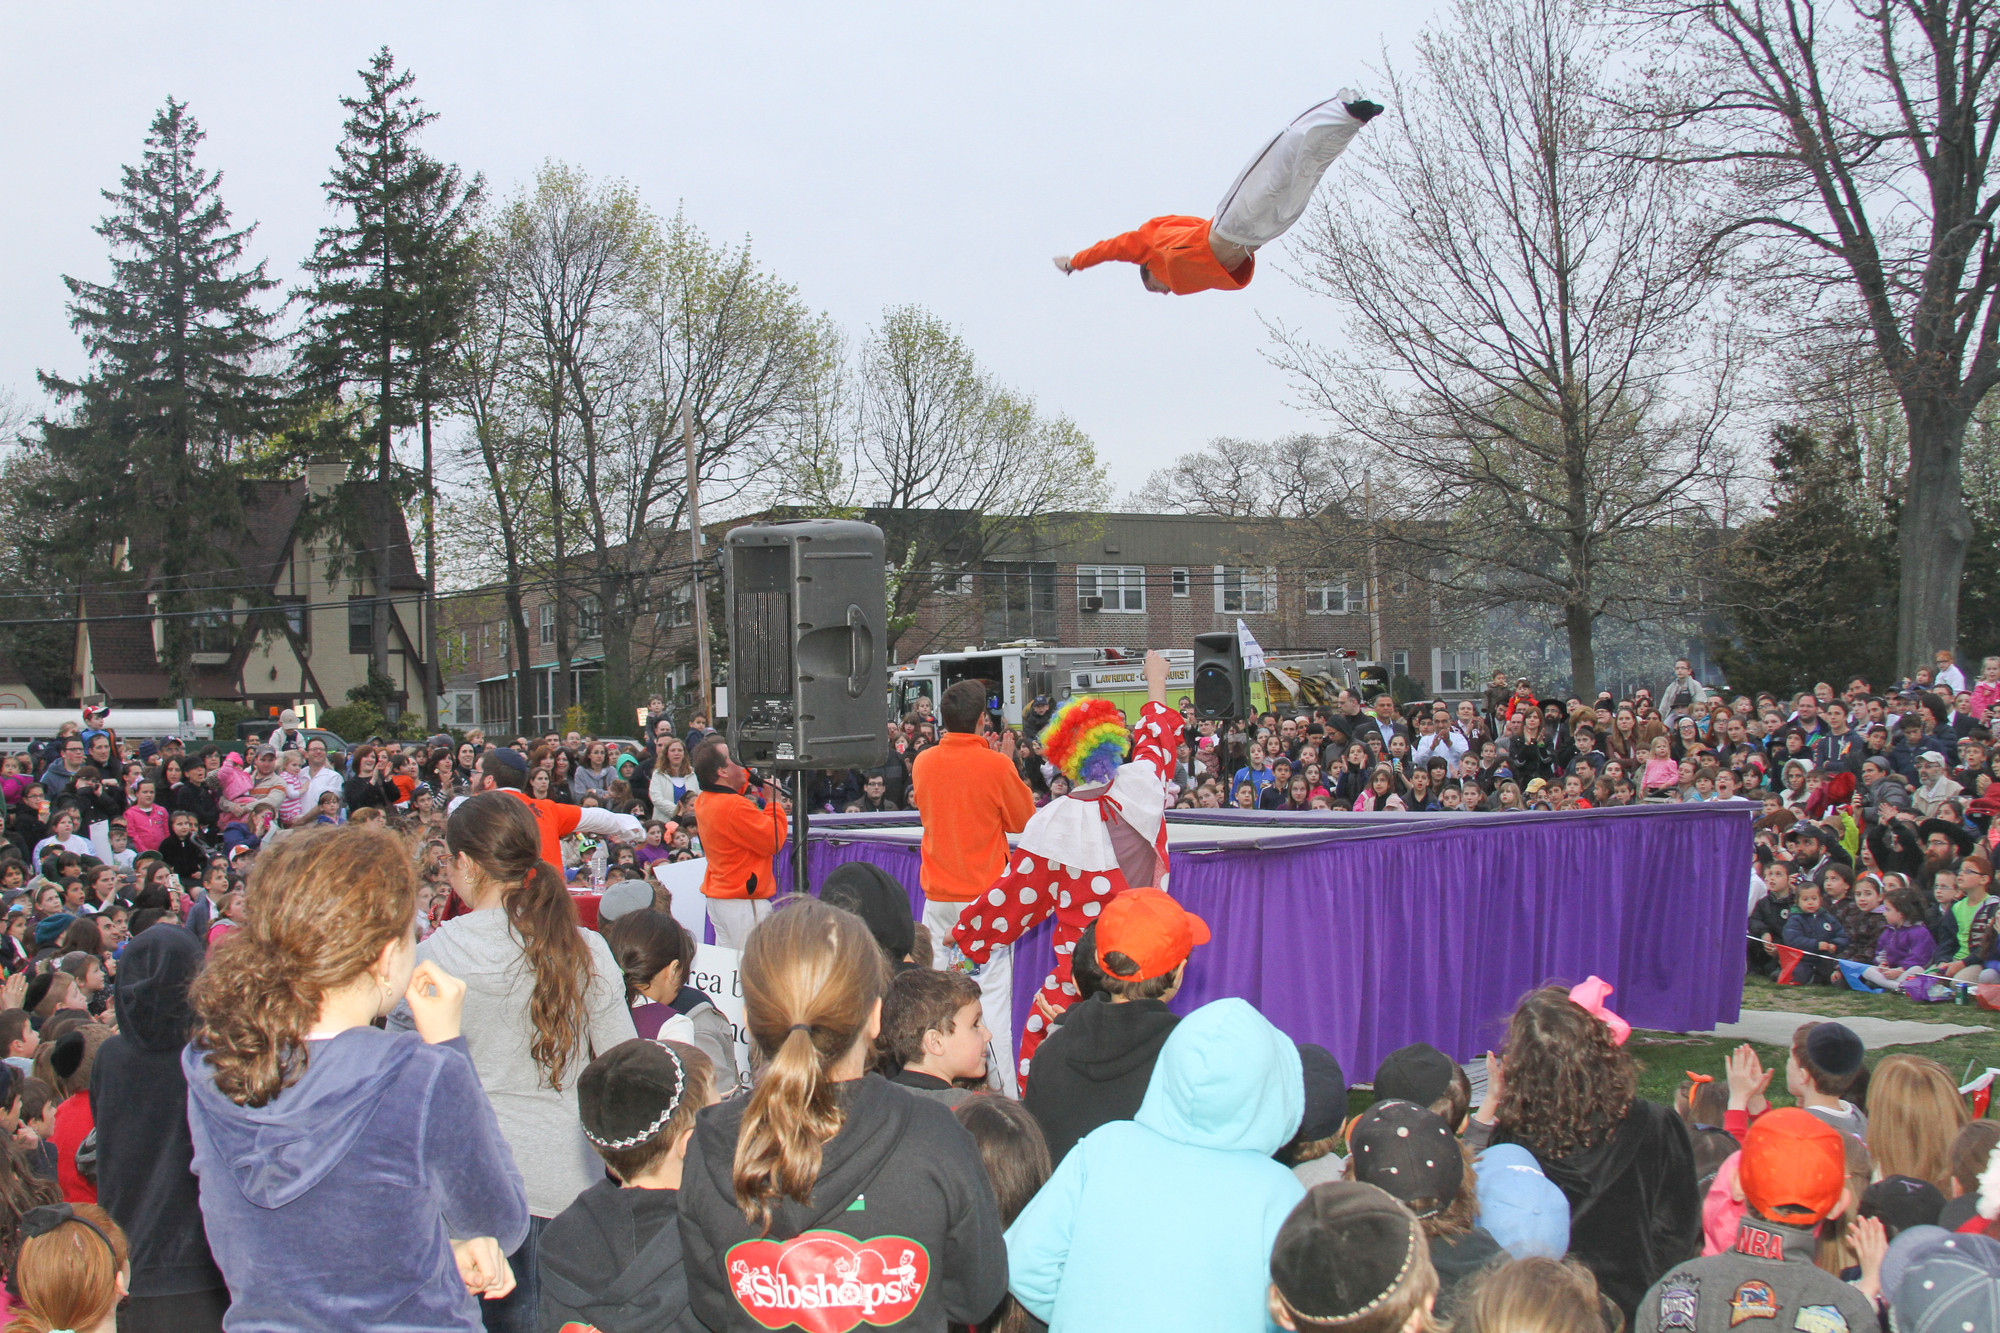 An aerial show full of tricks by the Amazing Skyriders entertained the audience at Cedarhurst Park.